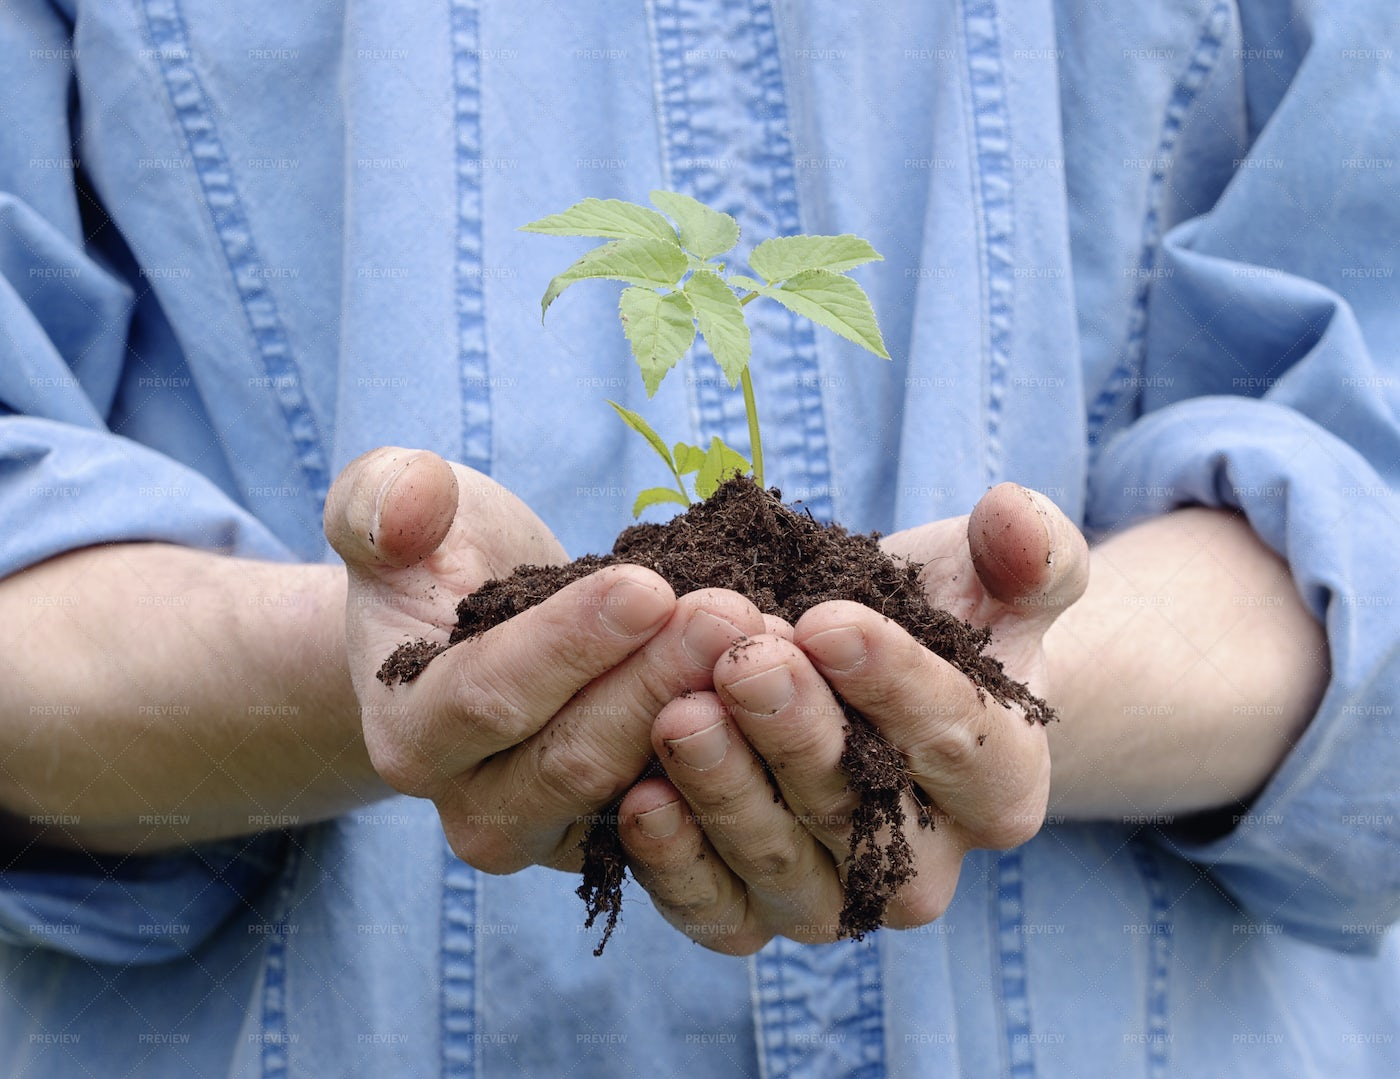 Holding Soil And A Plant: Stock Photos